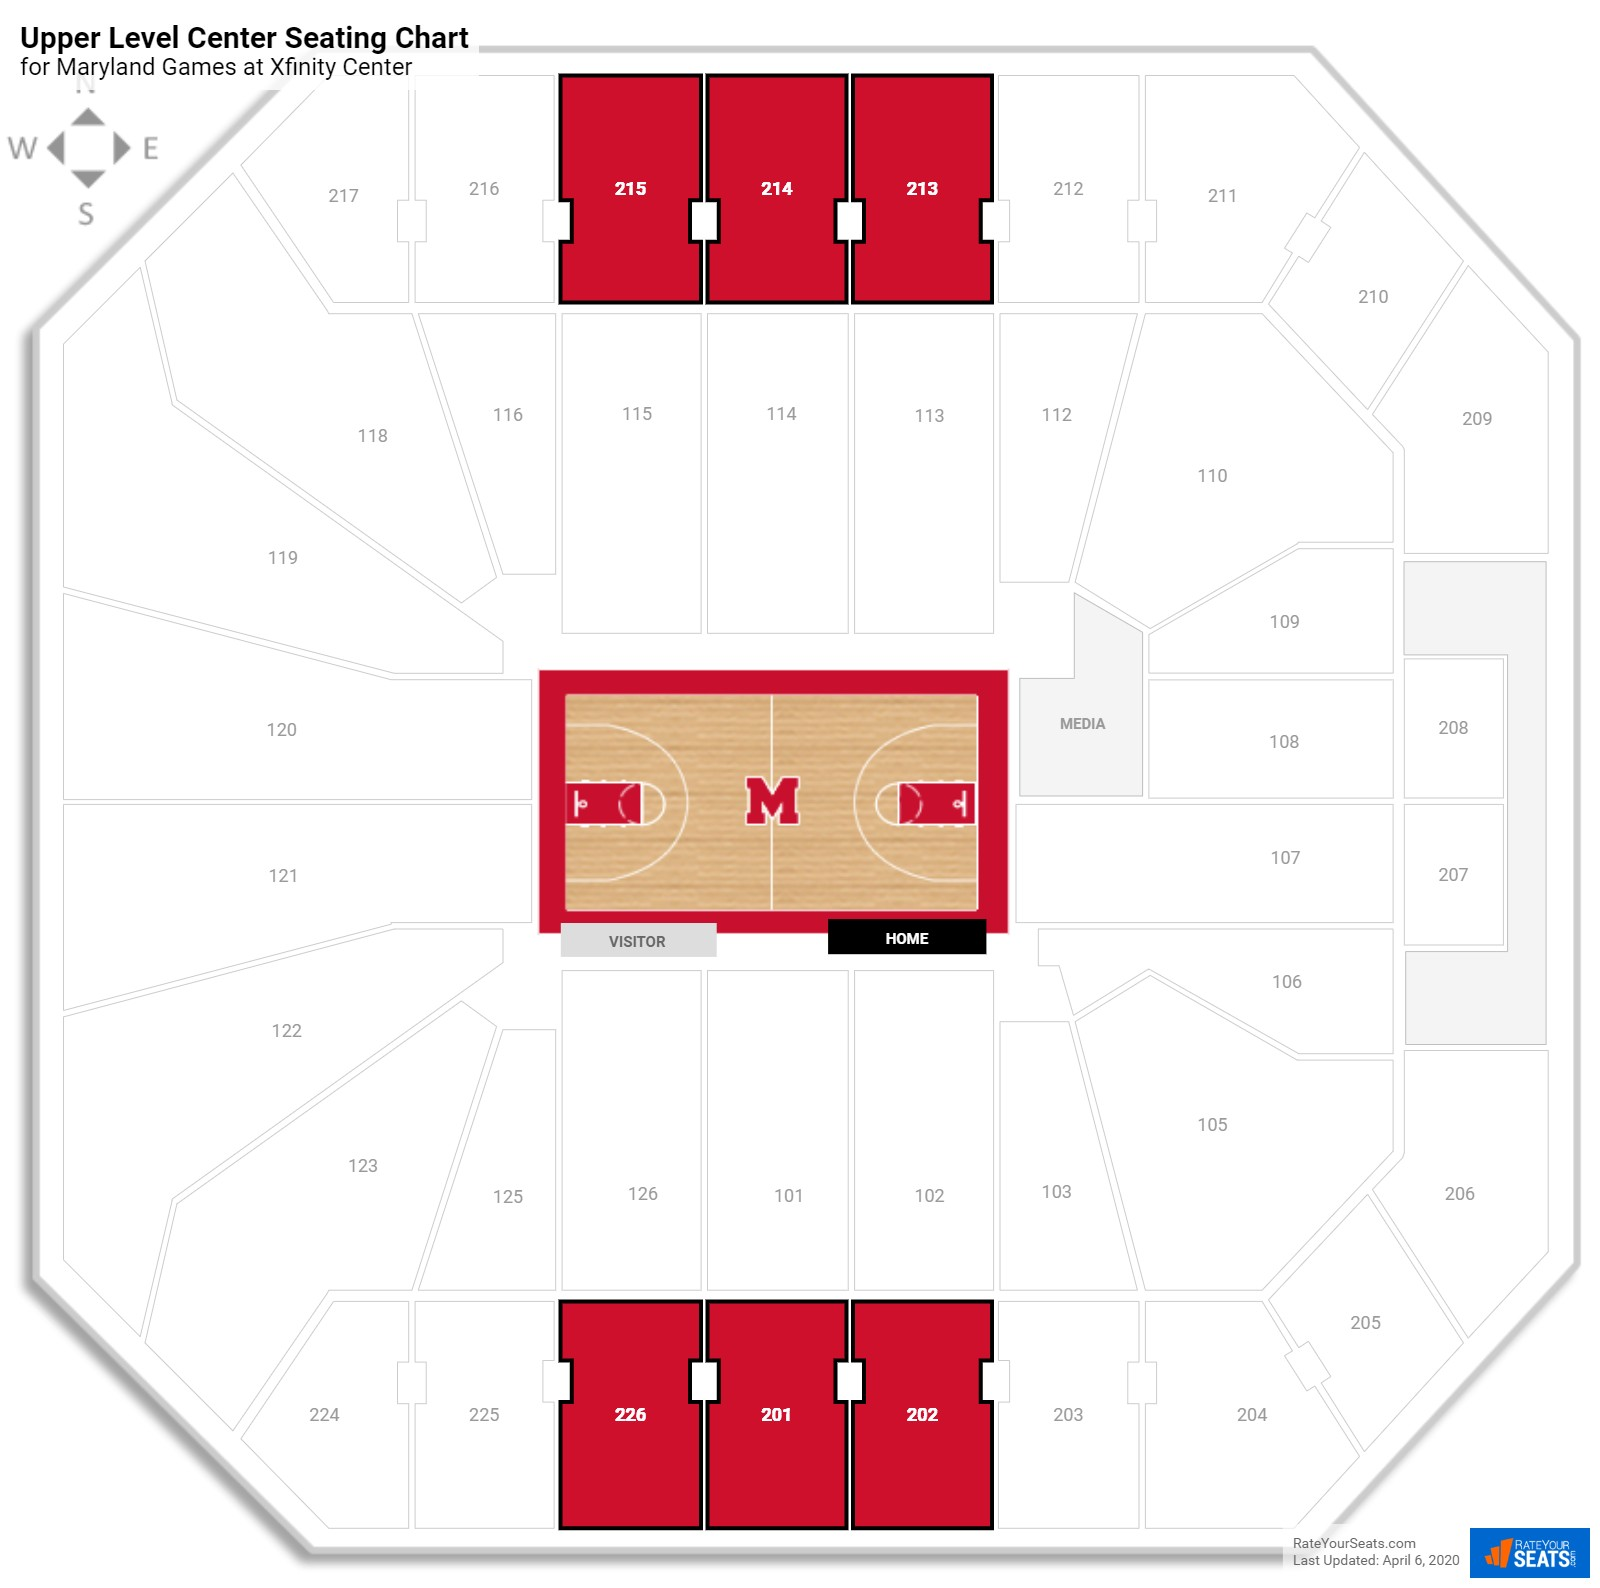 Comcast Center (Maryland) Seating Guide - RateYourSeats com